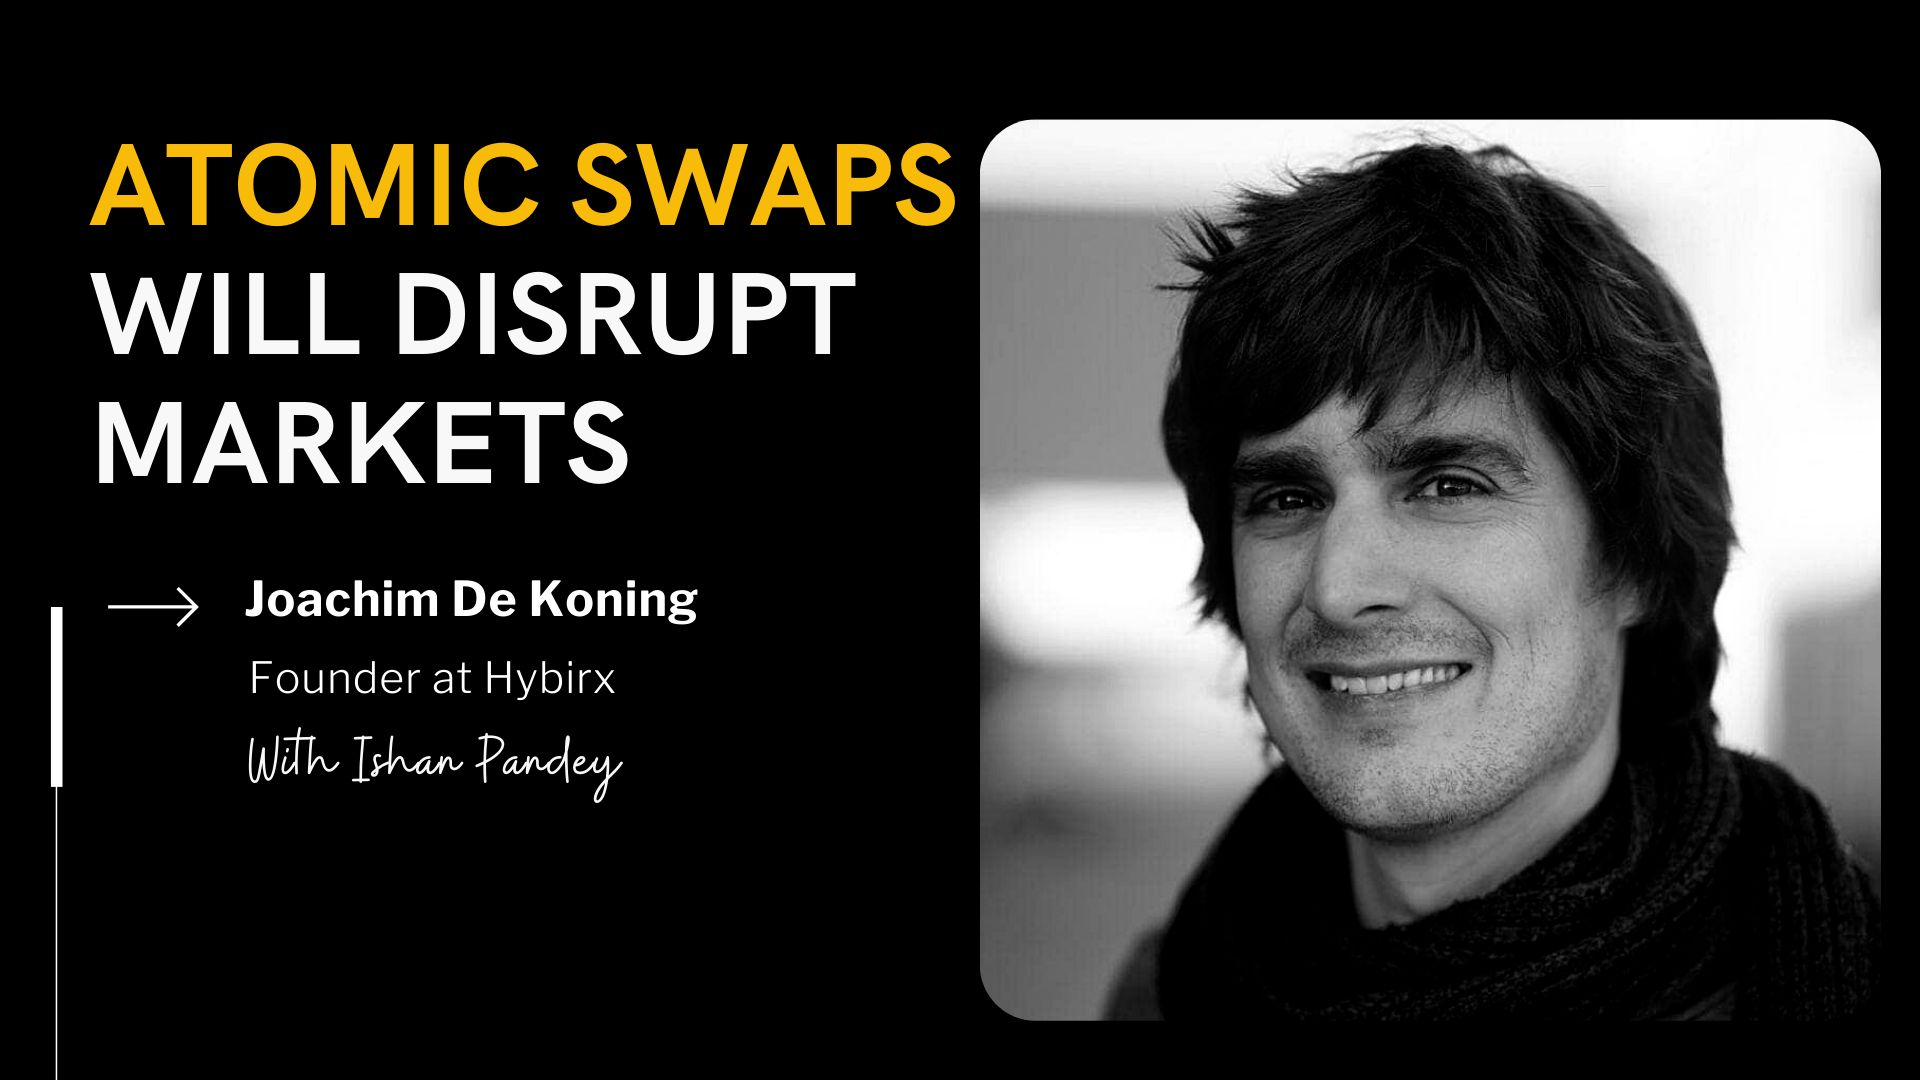 /atomic-swaps-will-revolutionize-trading-and-make-monitoring-of-markets-hard-for-regulators-mhl32r2 feature image